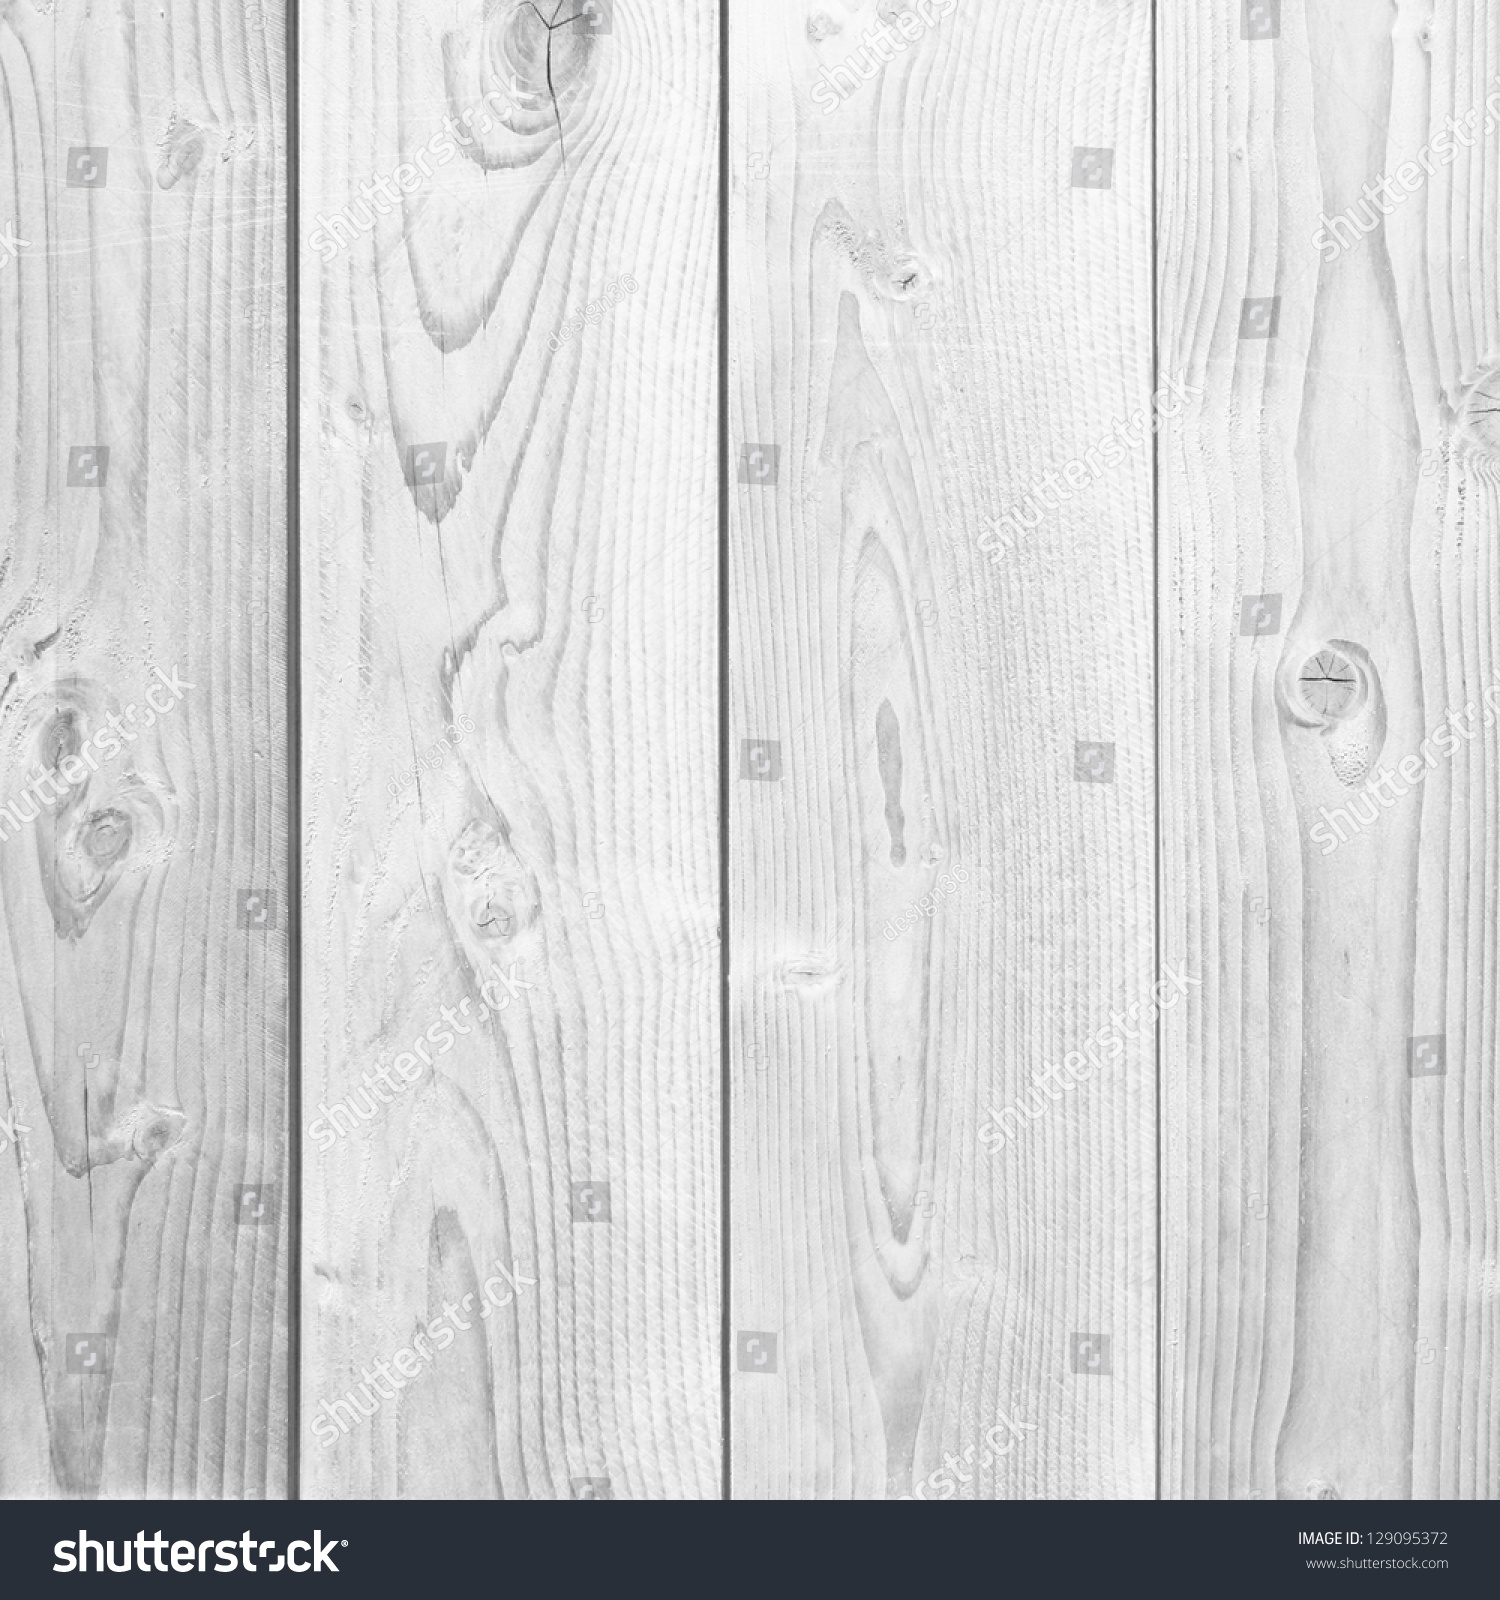 Old vintage white natural wood or wooden texture background or conceptual backdrop pattern made of timber